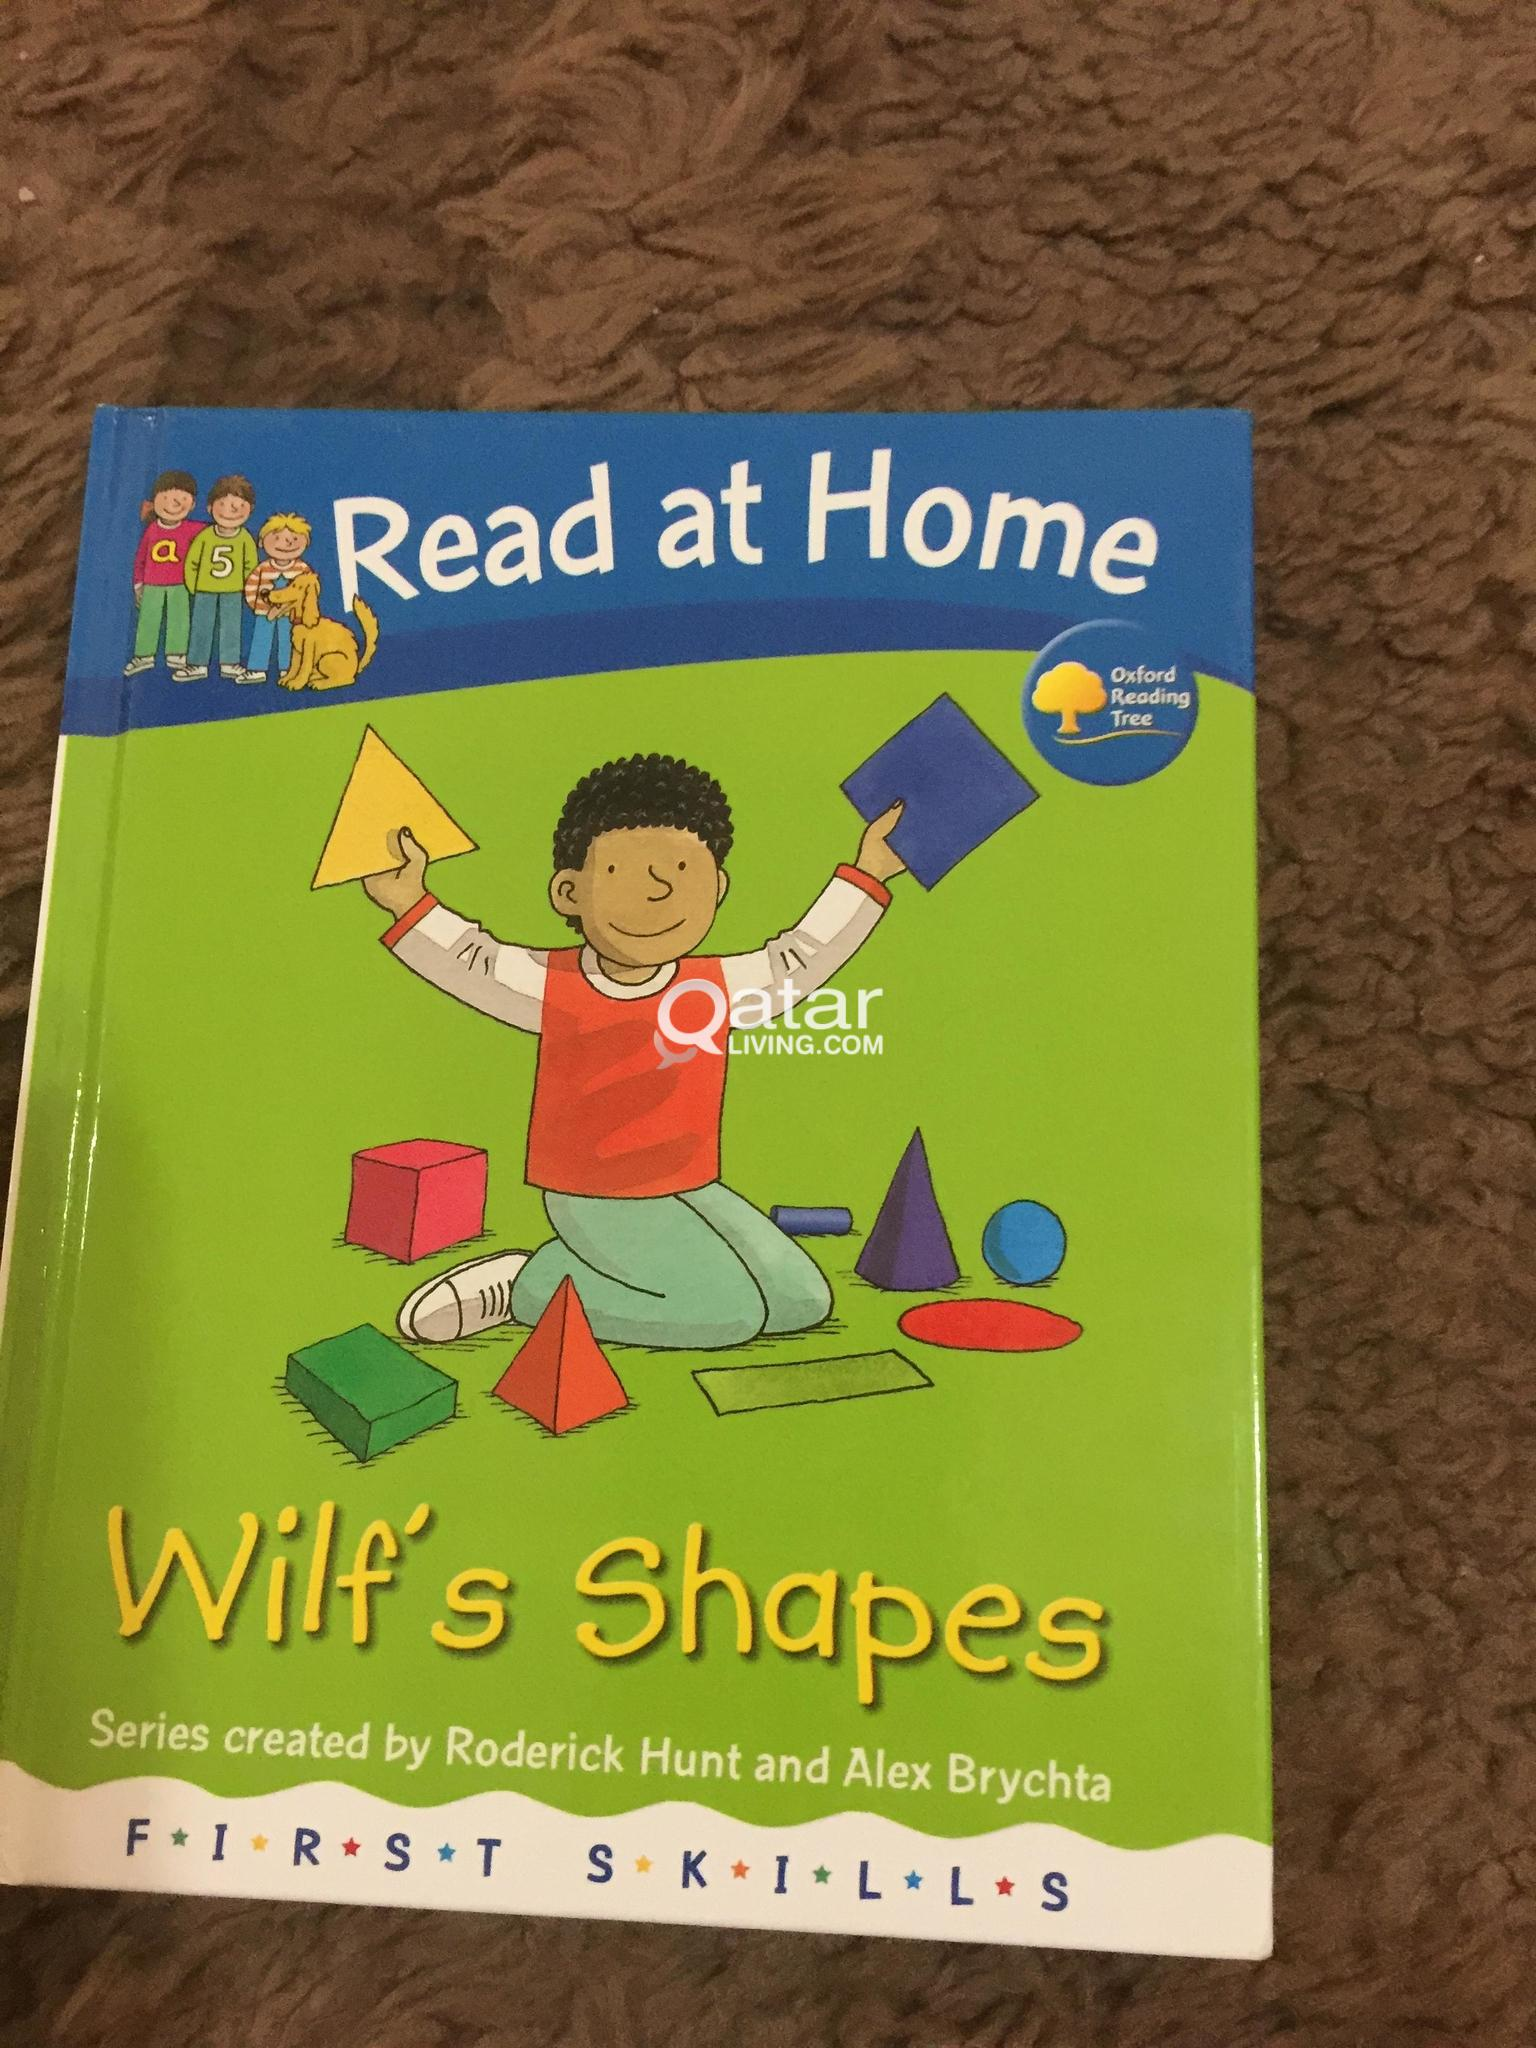 Oxford books for primary